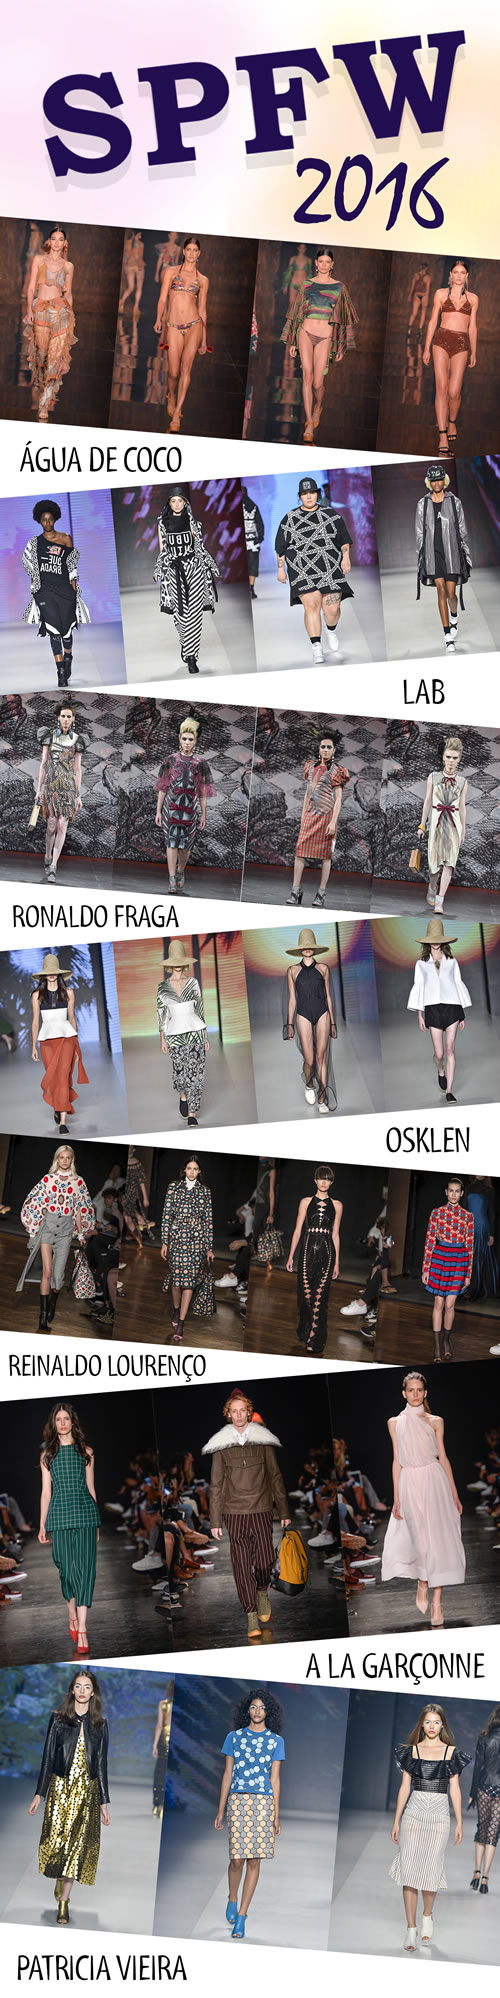 pittol_spfw_2016_review